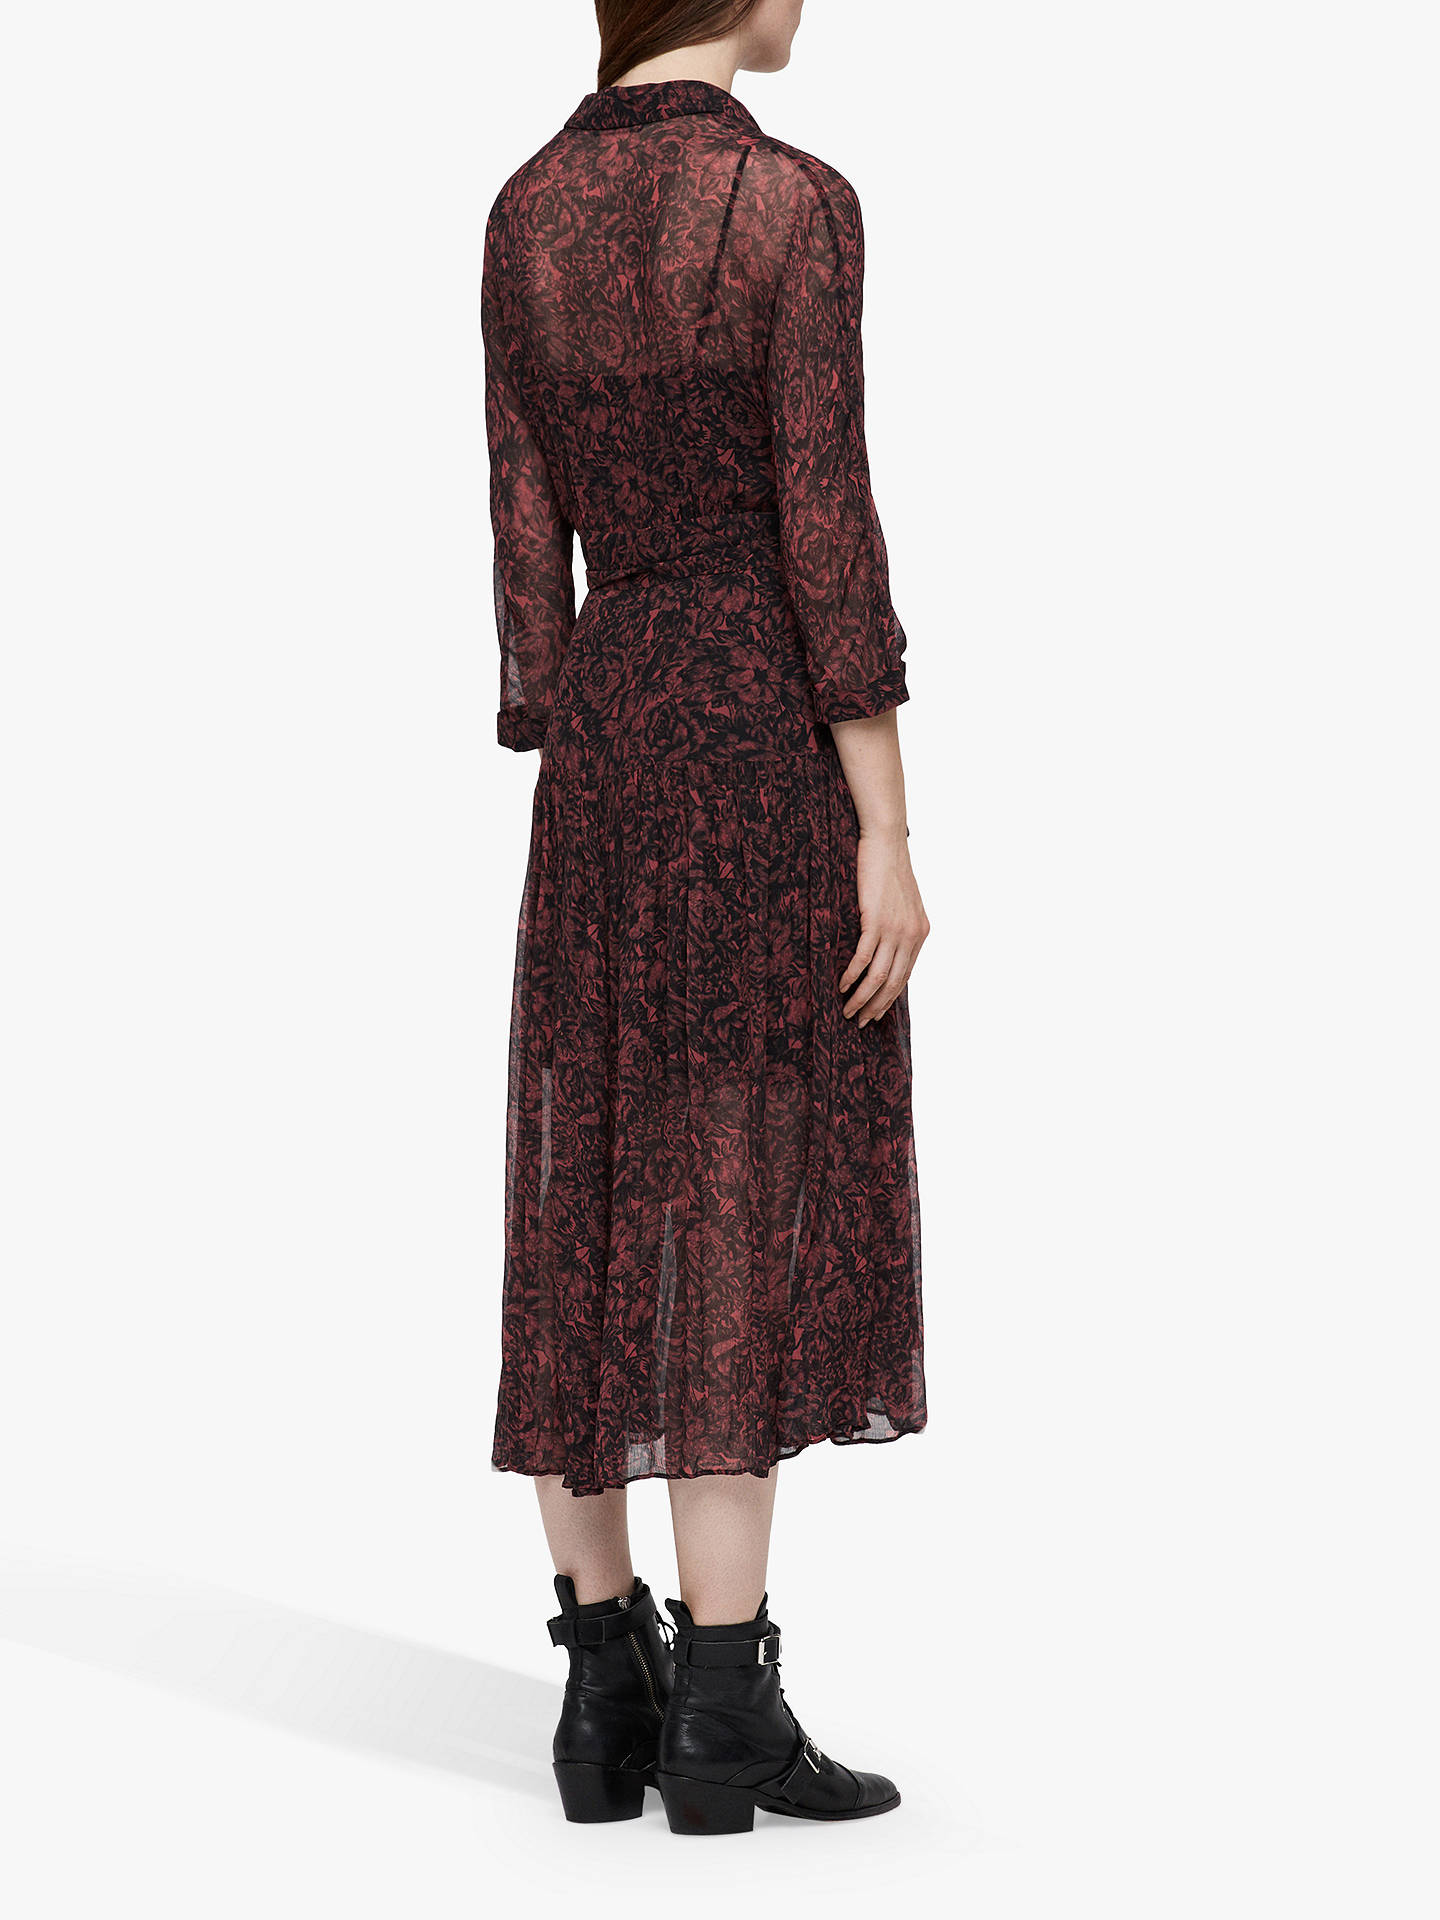 BuyAllSaints Eley Rosey Dress, Berry Red, 6 Online at johnlewis.com